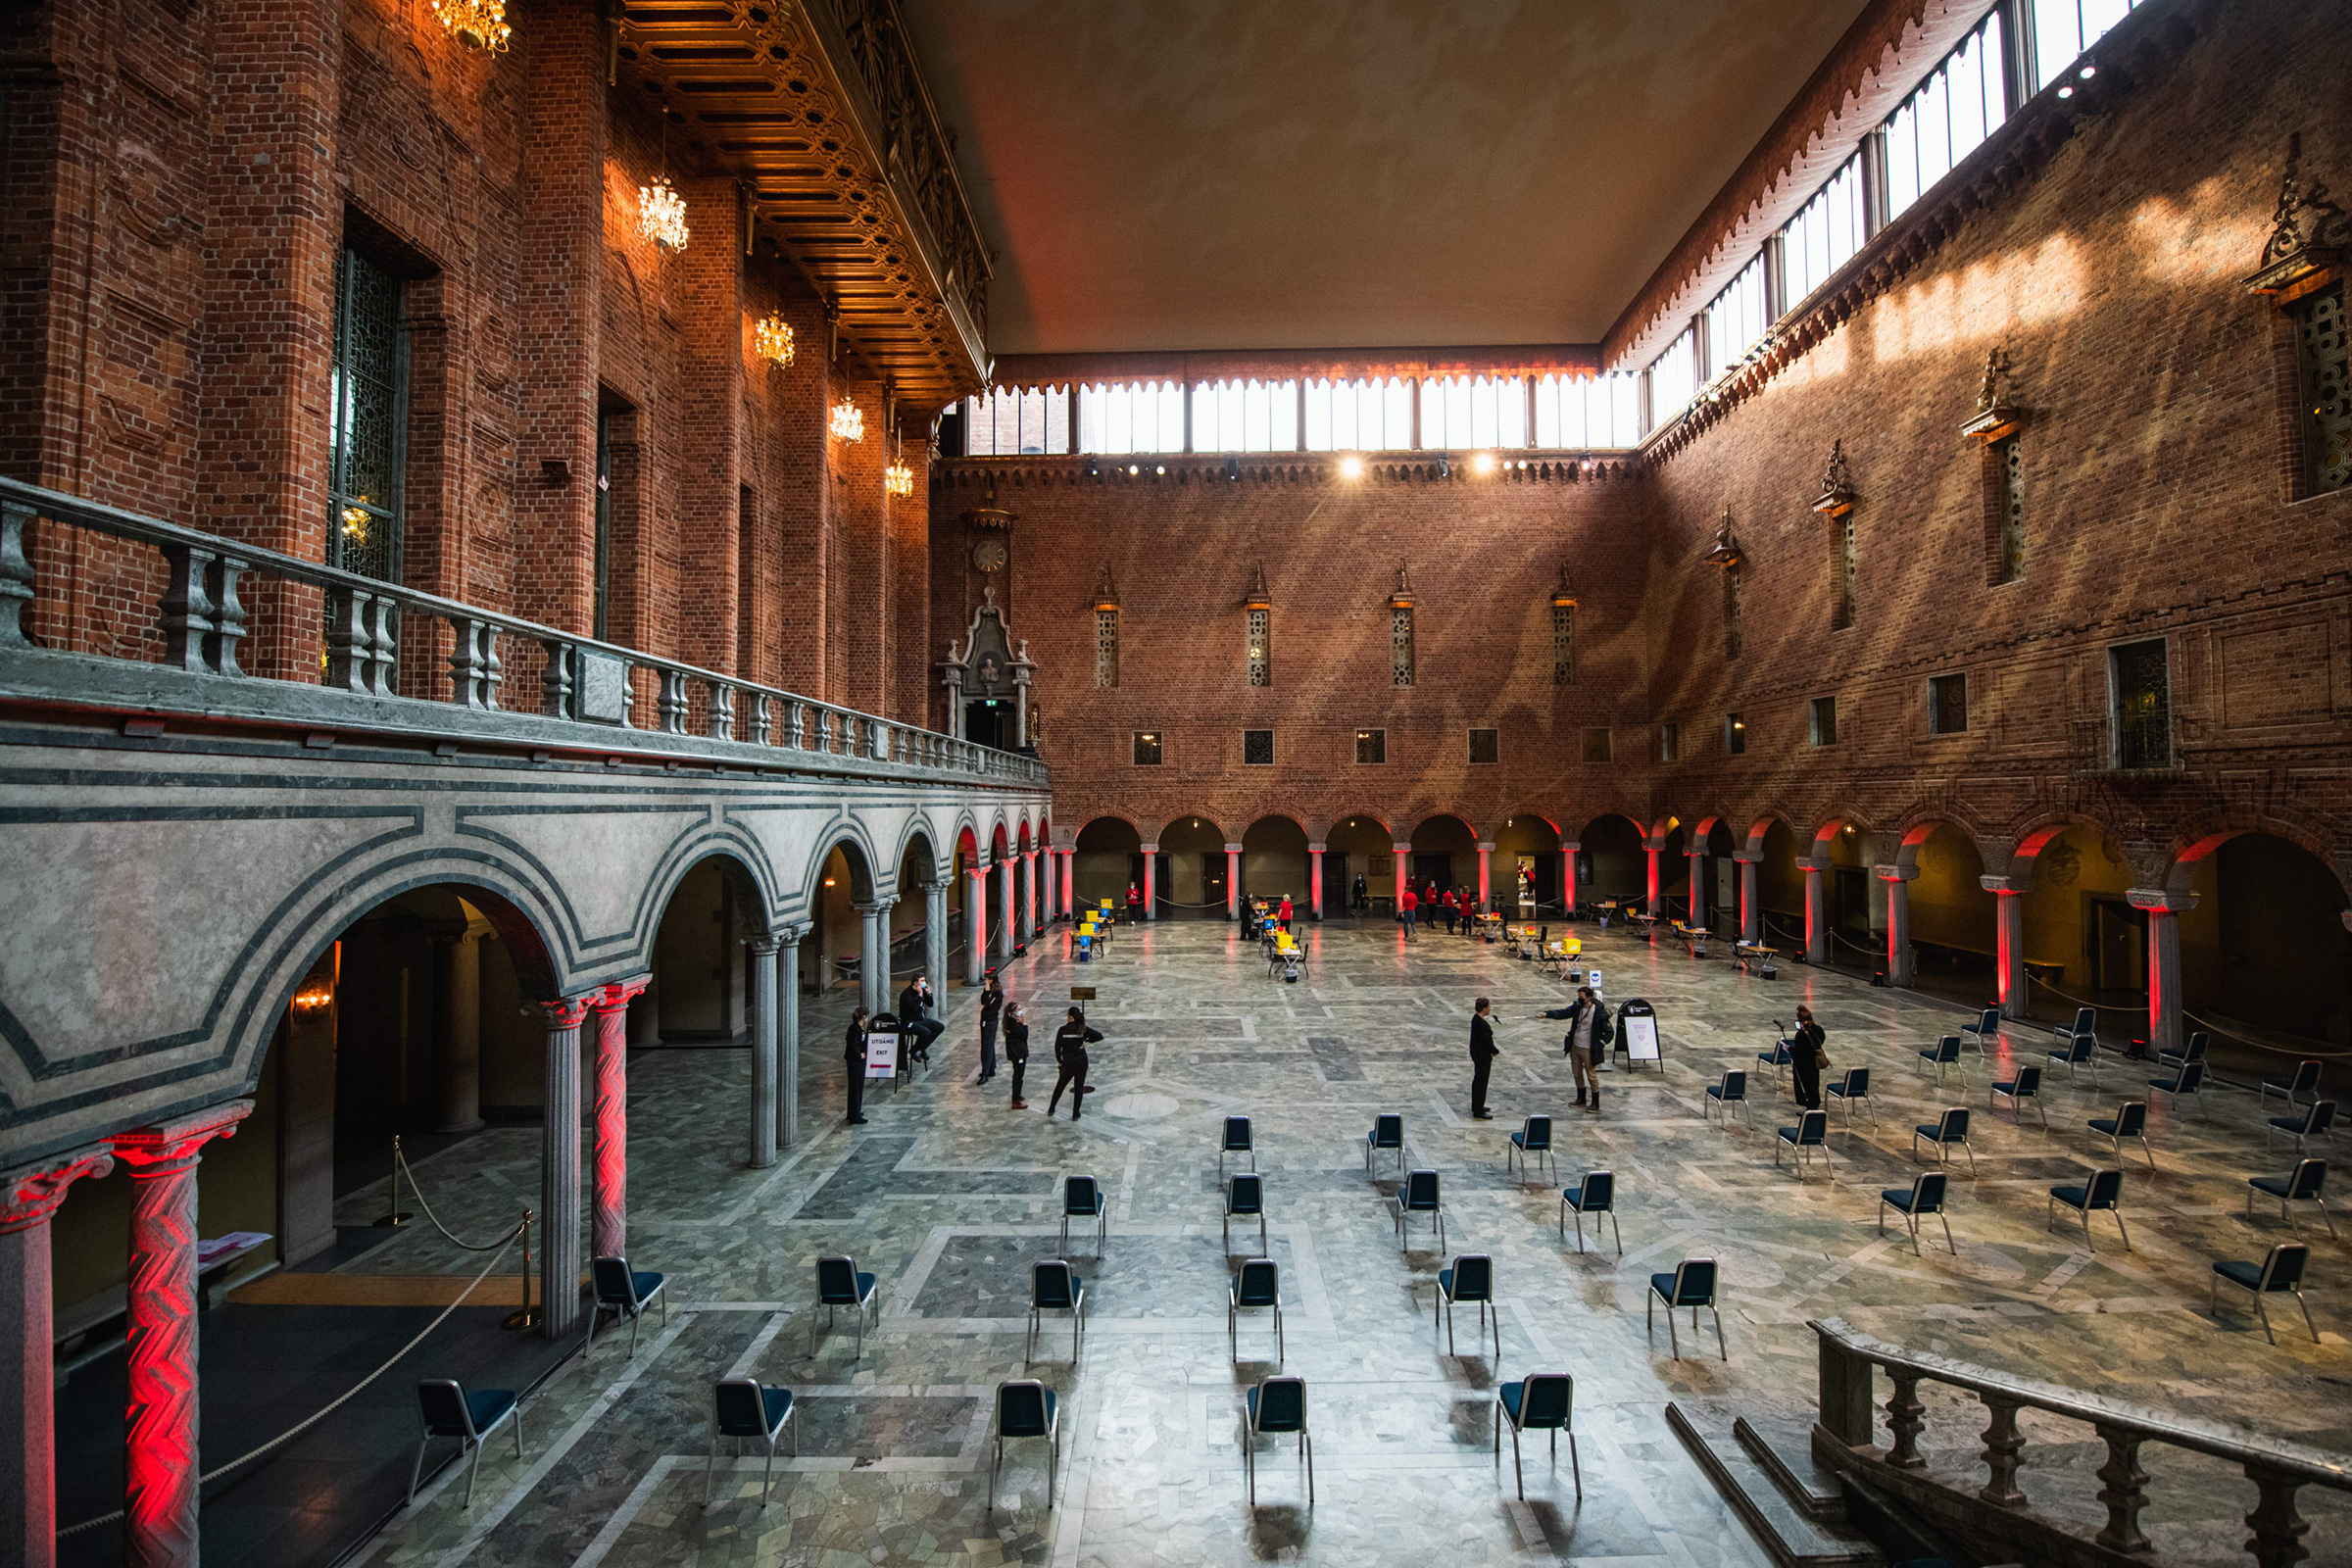 Preparations take place at Stockholm's City Hall to convert the Nobel Prize venue into a COVID-19 vaccination site on Feb. 21, 2021.